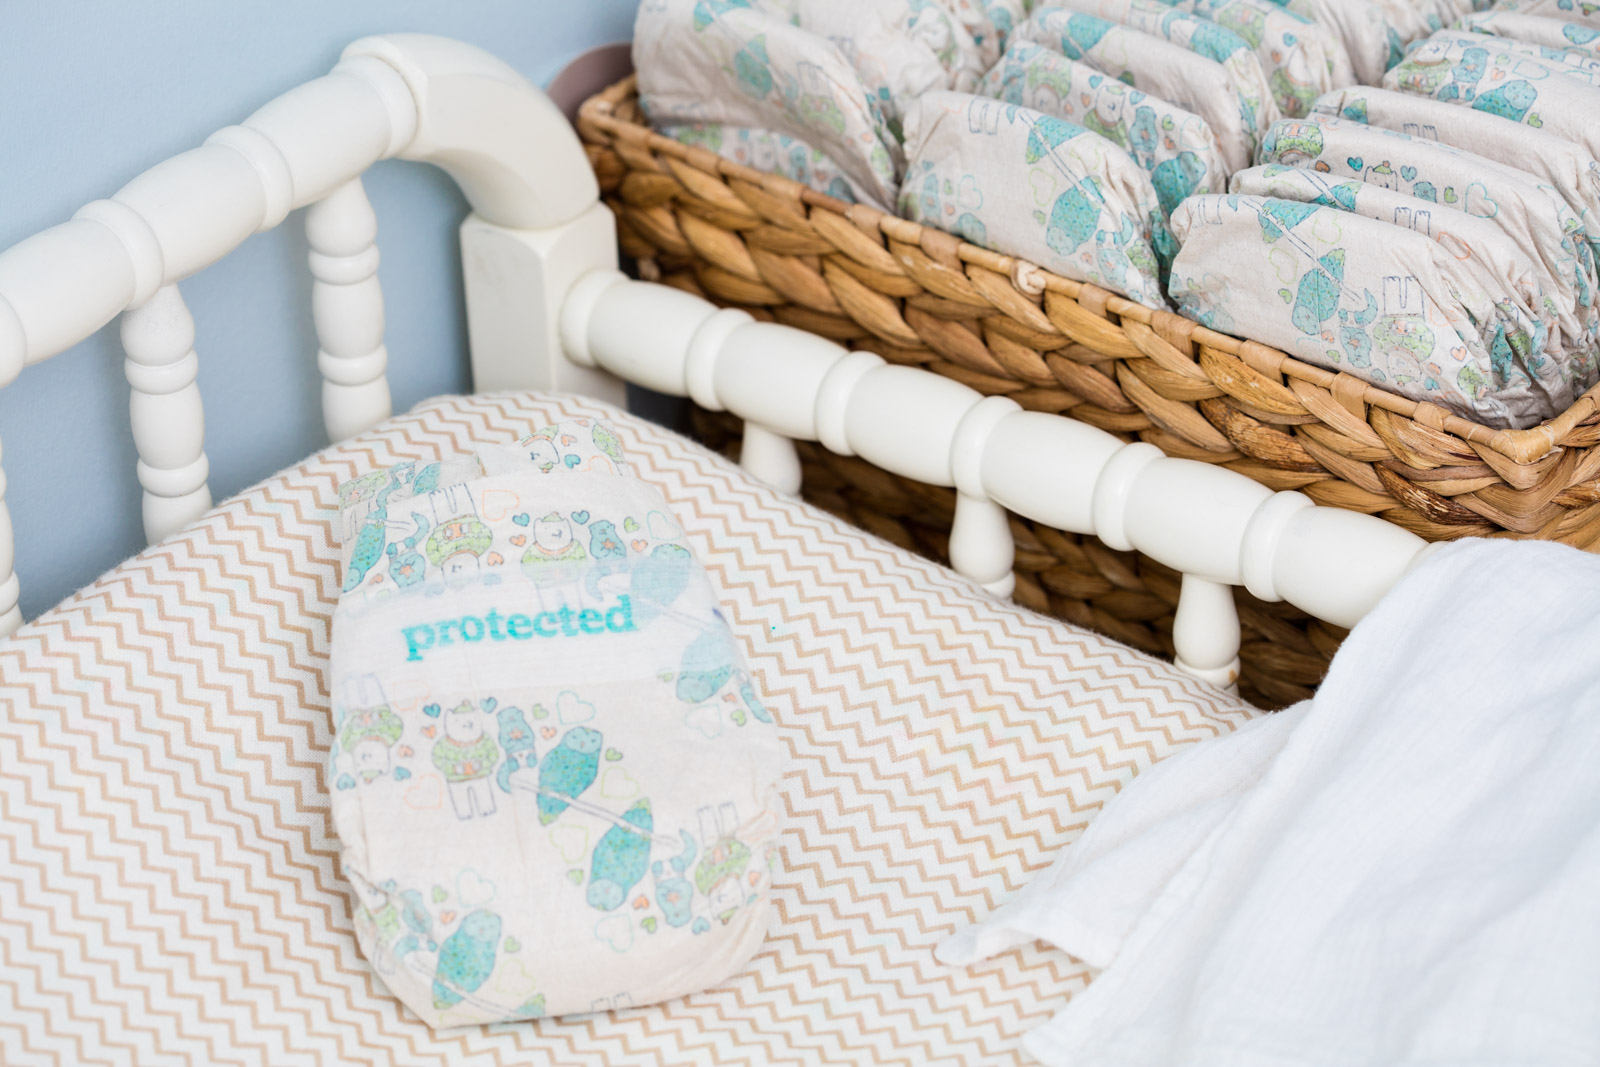 Seventh Generation product photography of Free & Clear Size 5 infant diapers, by Reciprocity Studio commercial photographers. Shot on location in Hinesburg, Vermont.